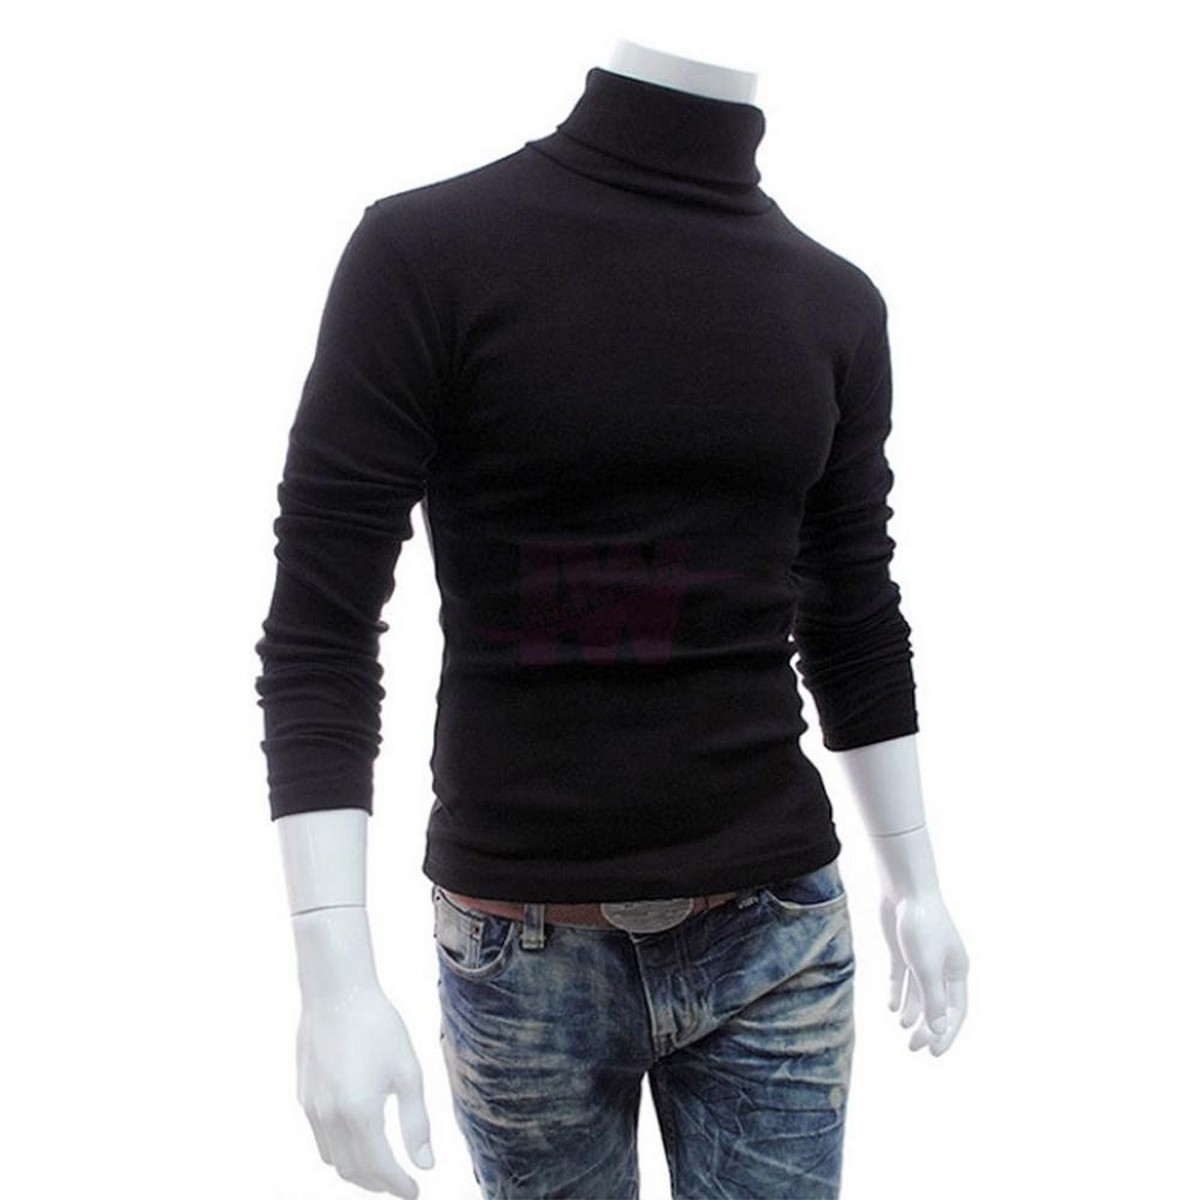 Men Premium High Neck Black Full Sleeve Pullover Stretchable Ribbed Cotton & Lycra T-Shirt Turtleneck Tops Sweatshirt Winter Warm Free Size Every Fitter Special offer InnerWear pk